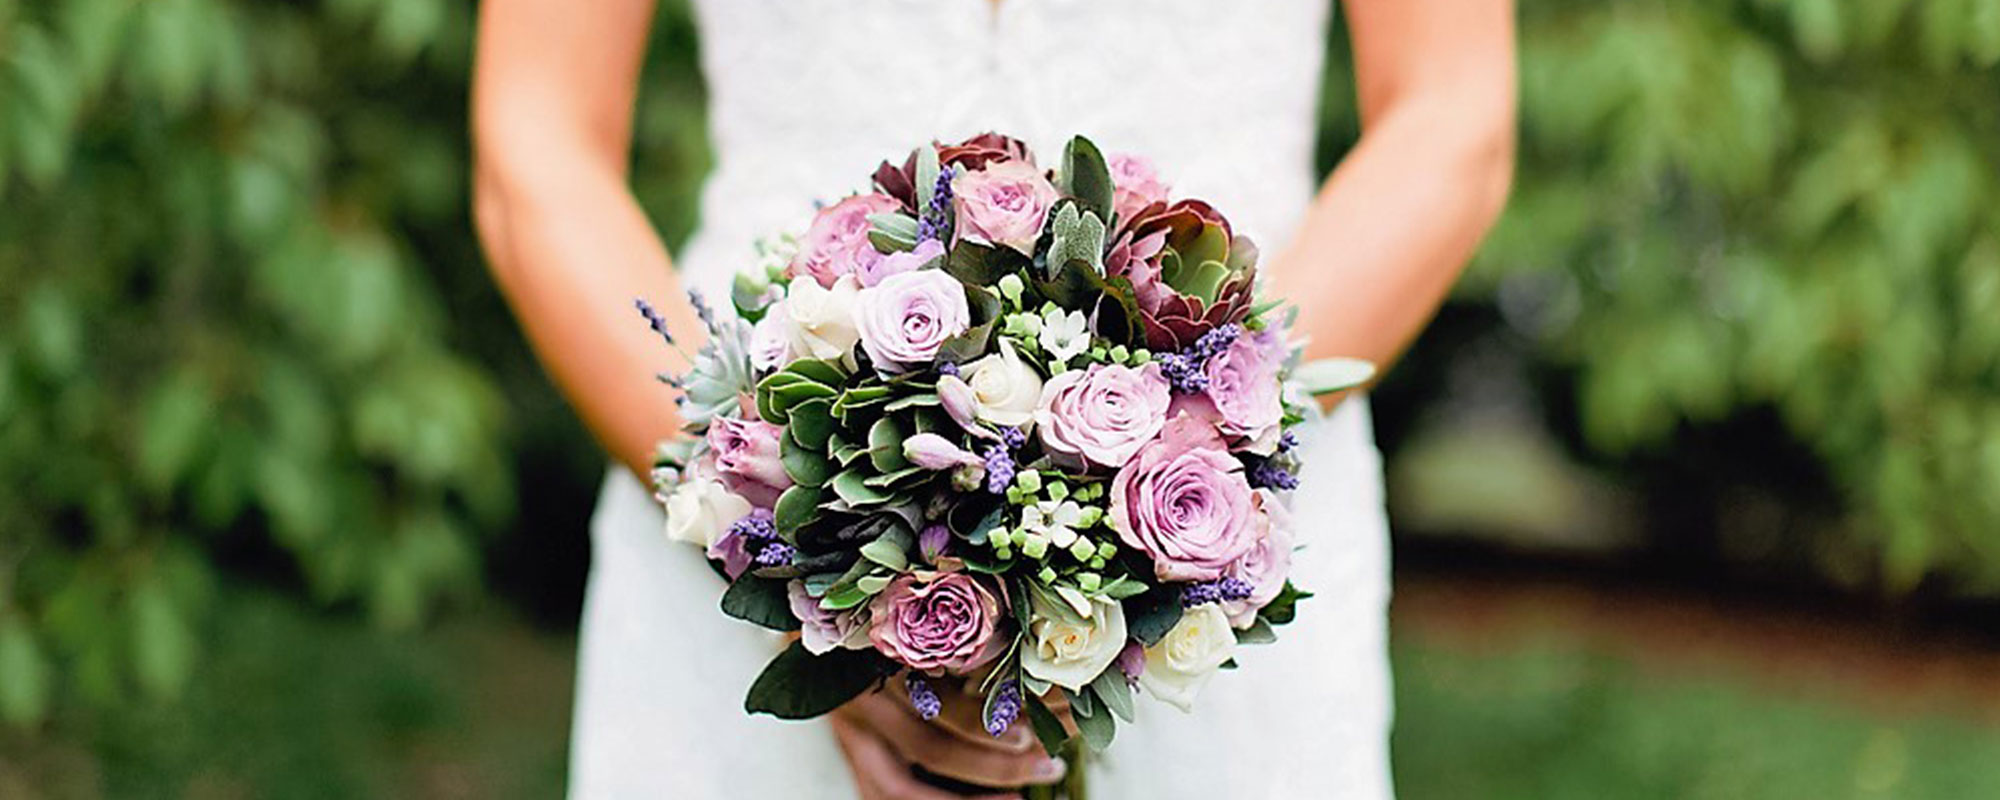 Scentsational Flowers Croydon - Wedding Flowers Enquiry